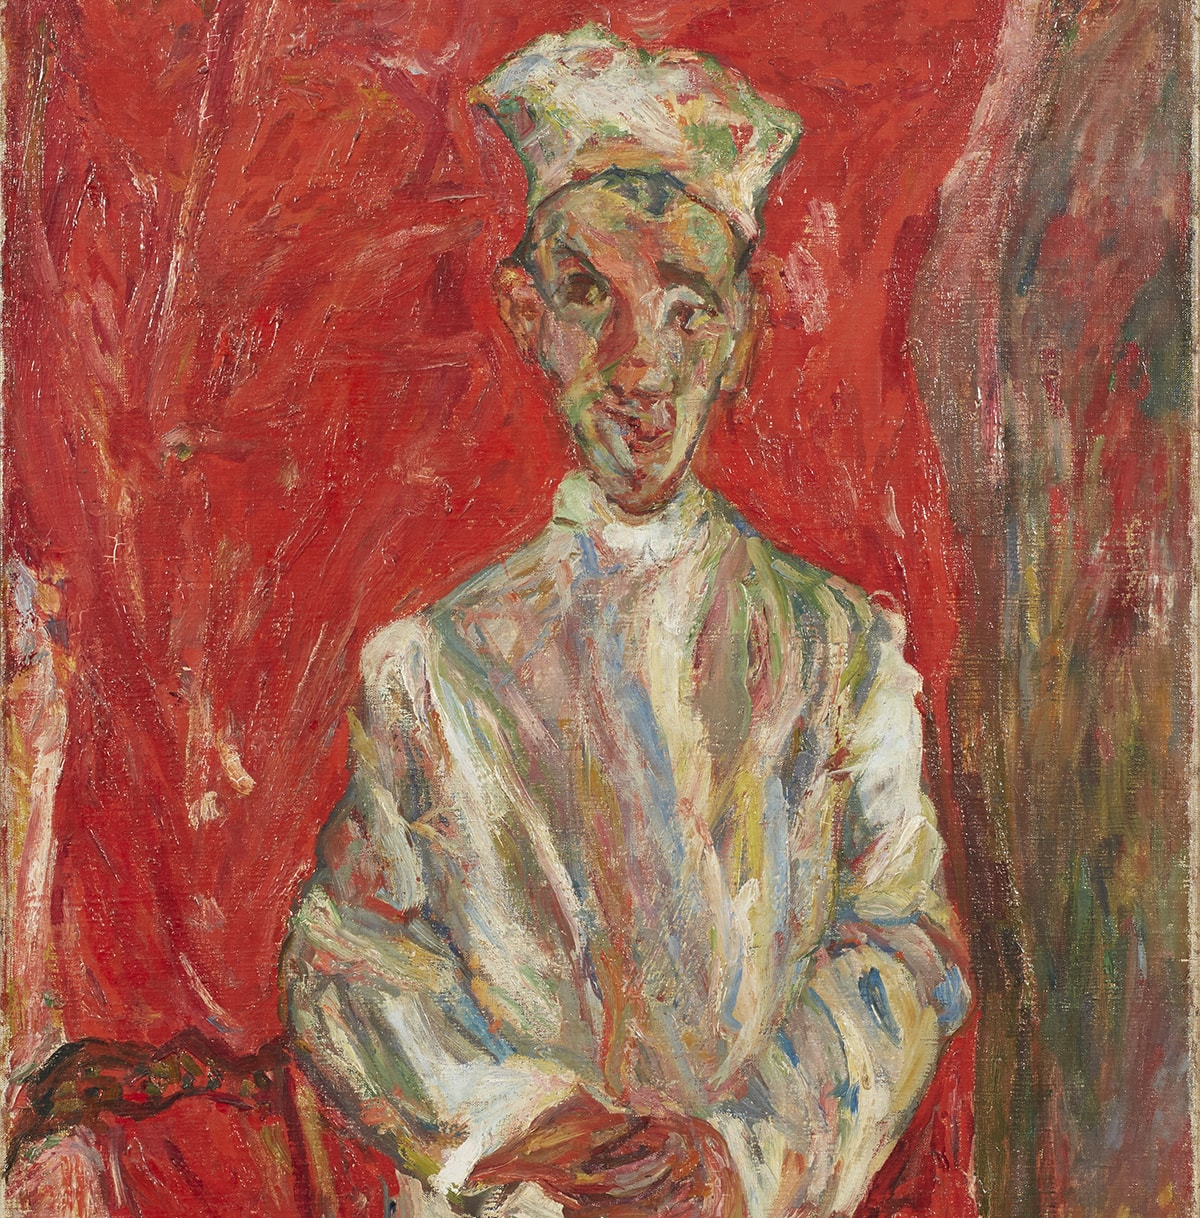 A vertical painting featuring a full-length male figure standing with his hands clasped in front. His left foot is placed in front of the other pointing to the right of the picture. He wears a cap atop a long face with a pointed chin. His ears protrude from either side of his head, bits of black hair poking out by his ears and at his forehead. Large dark eyes look off to the viewer's left. He wears what appears to be a long-sleeve, high-collared white shirt. When examined more closely, the white shirt as well as his cap and shoes are made up of many colors in addition to white—grays, blues, green, yellows, tan, orange, and dashes of red applied in broad, rough brushstrokes. Similarly, his baggy, brownish pants are painted with strokes of brown, black, yellow, red, orange, and tan. To the left of the figure stands a brown chair with ornate slatted back. Behind the figure is a field of mottled red tones making up most of the width of the painting, suggesting a curtain. A narrow swath of reds, browns, yellows complete the right side of the painting running from top to bottom.